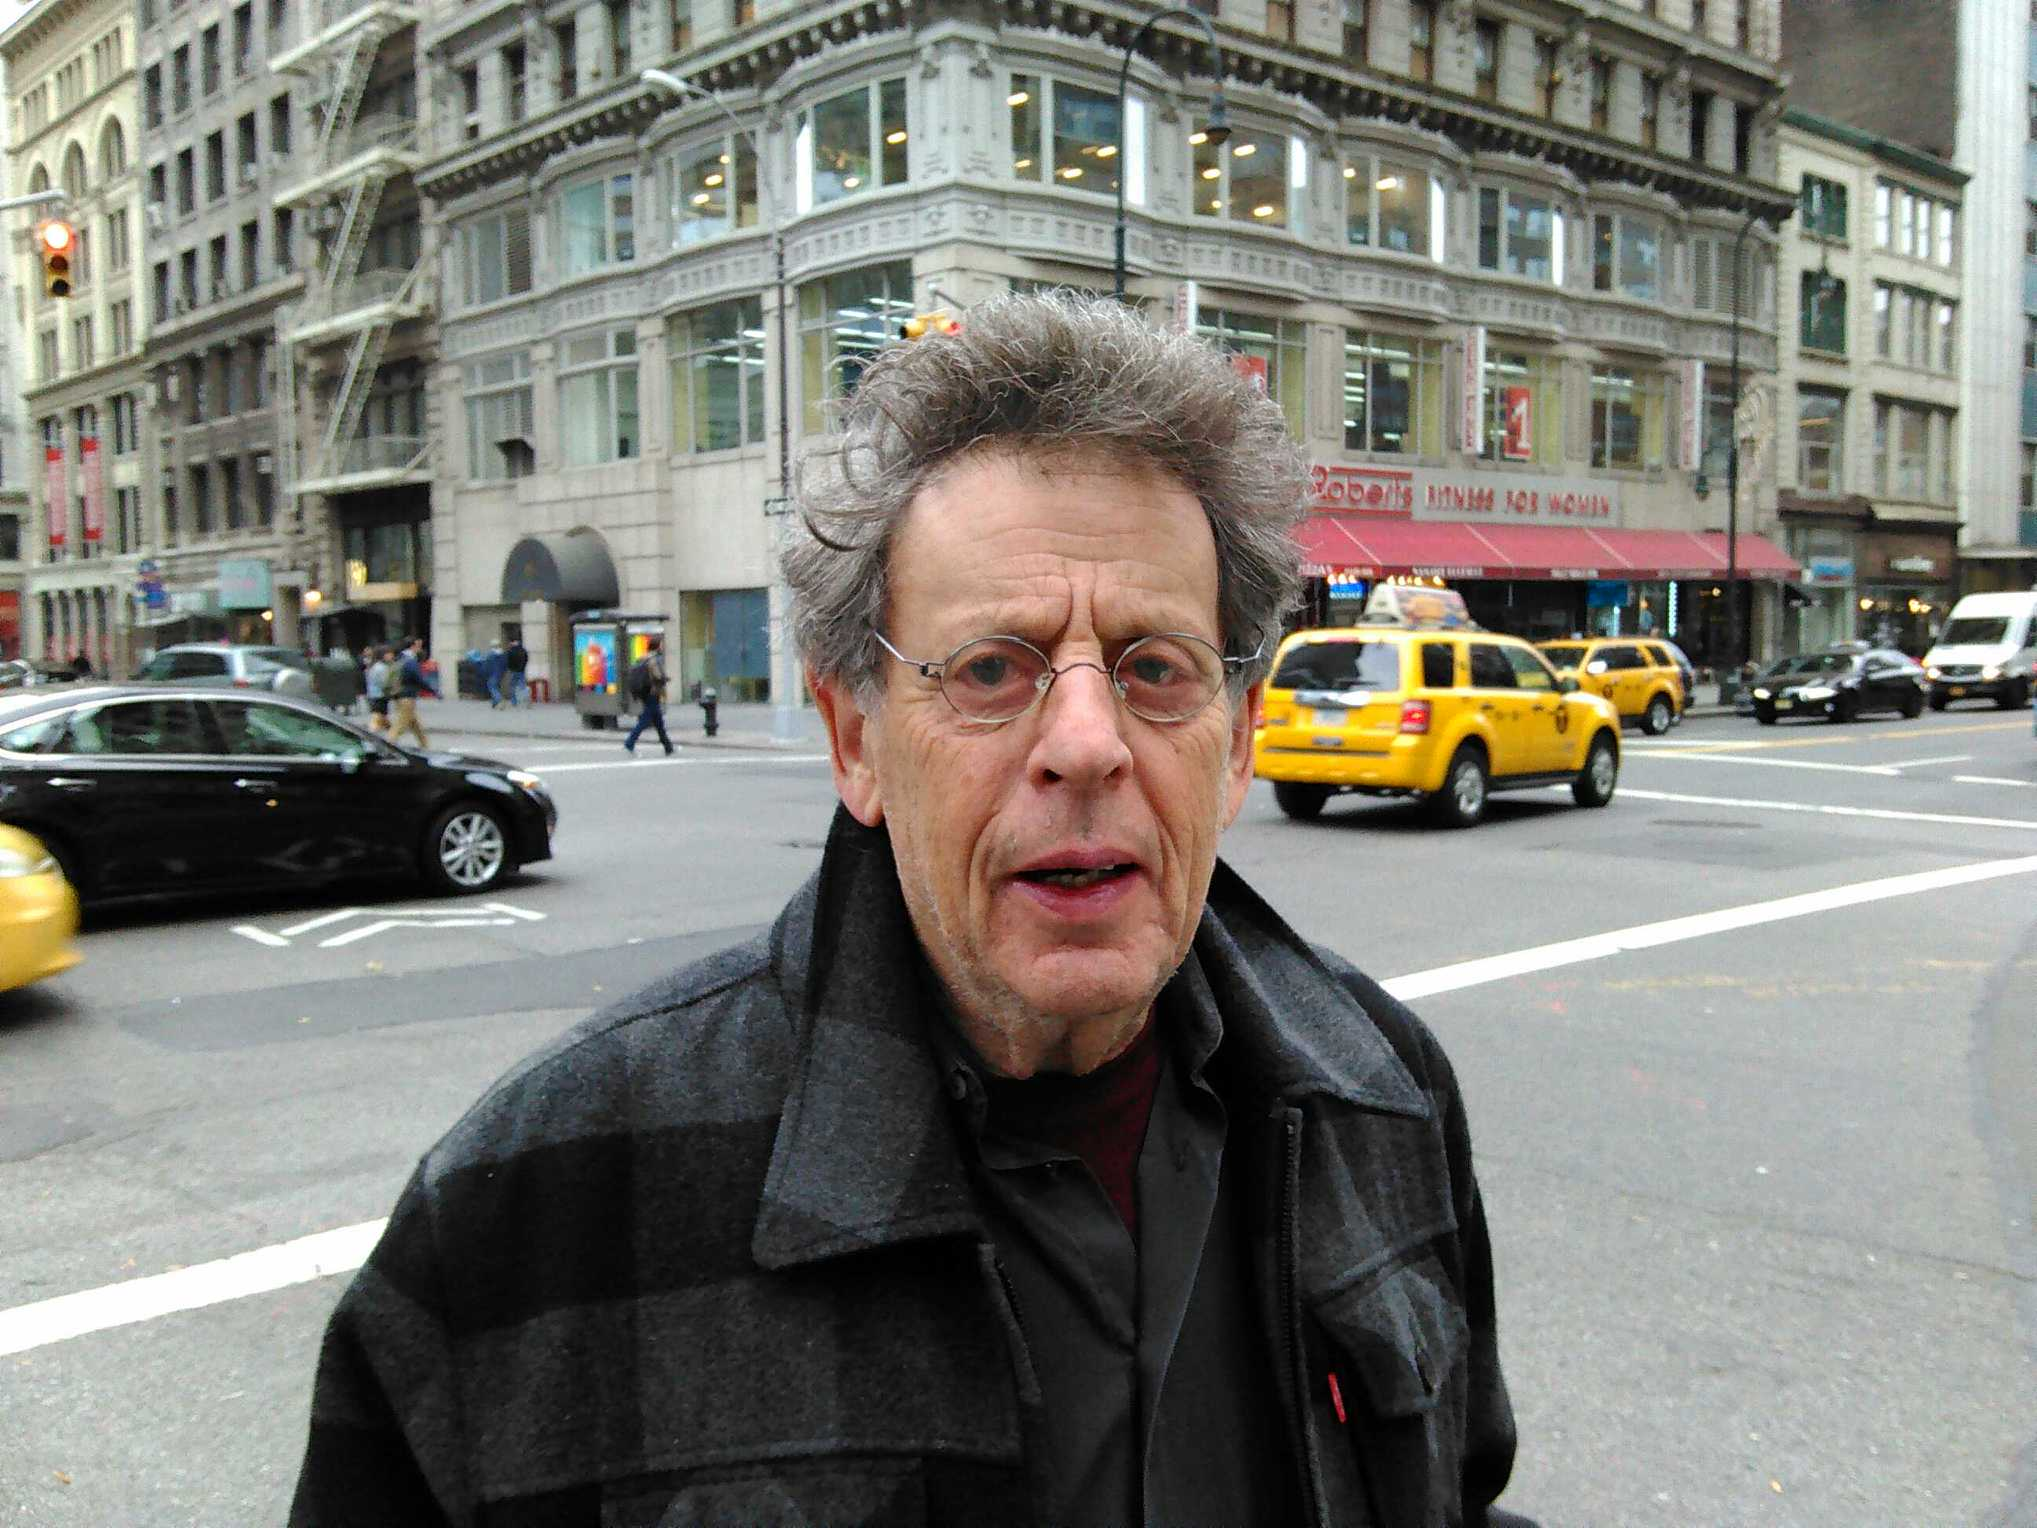 Philip Glass on 14th St., December 9, 2015.